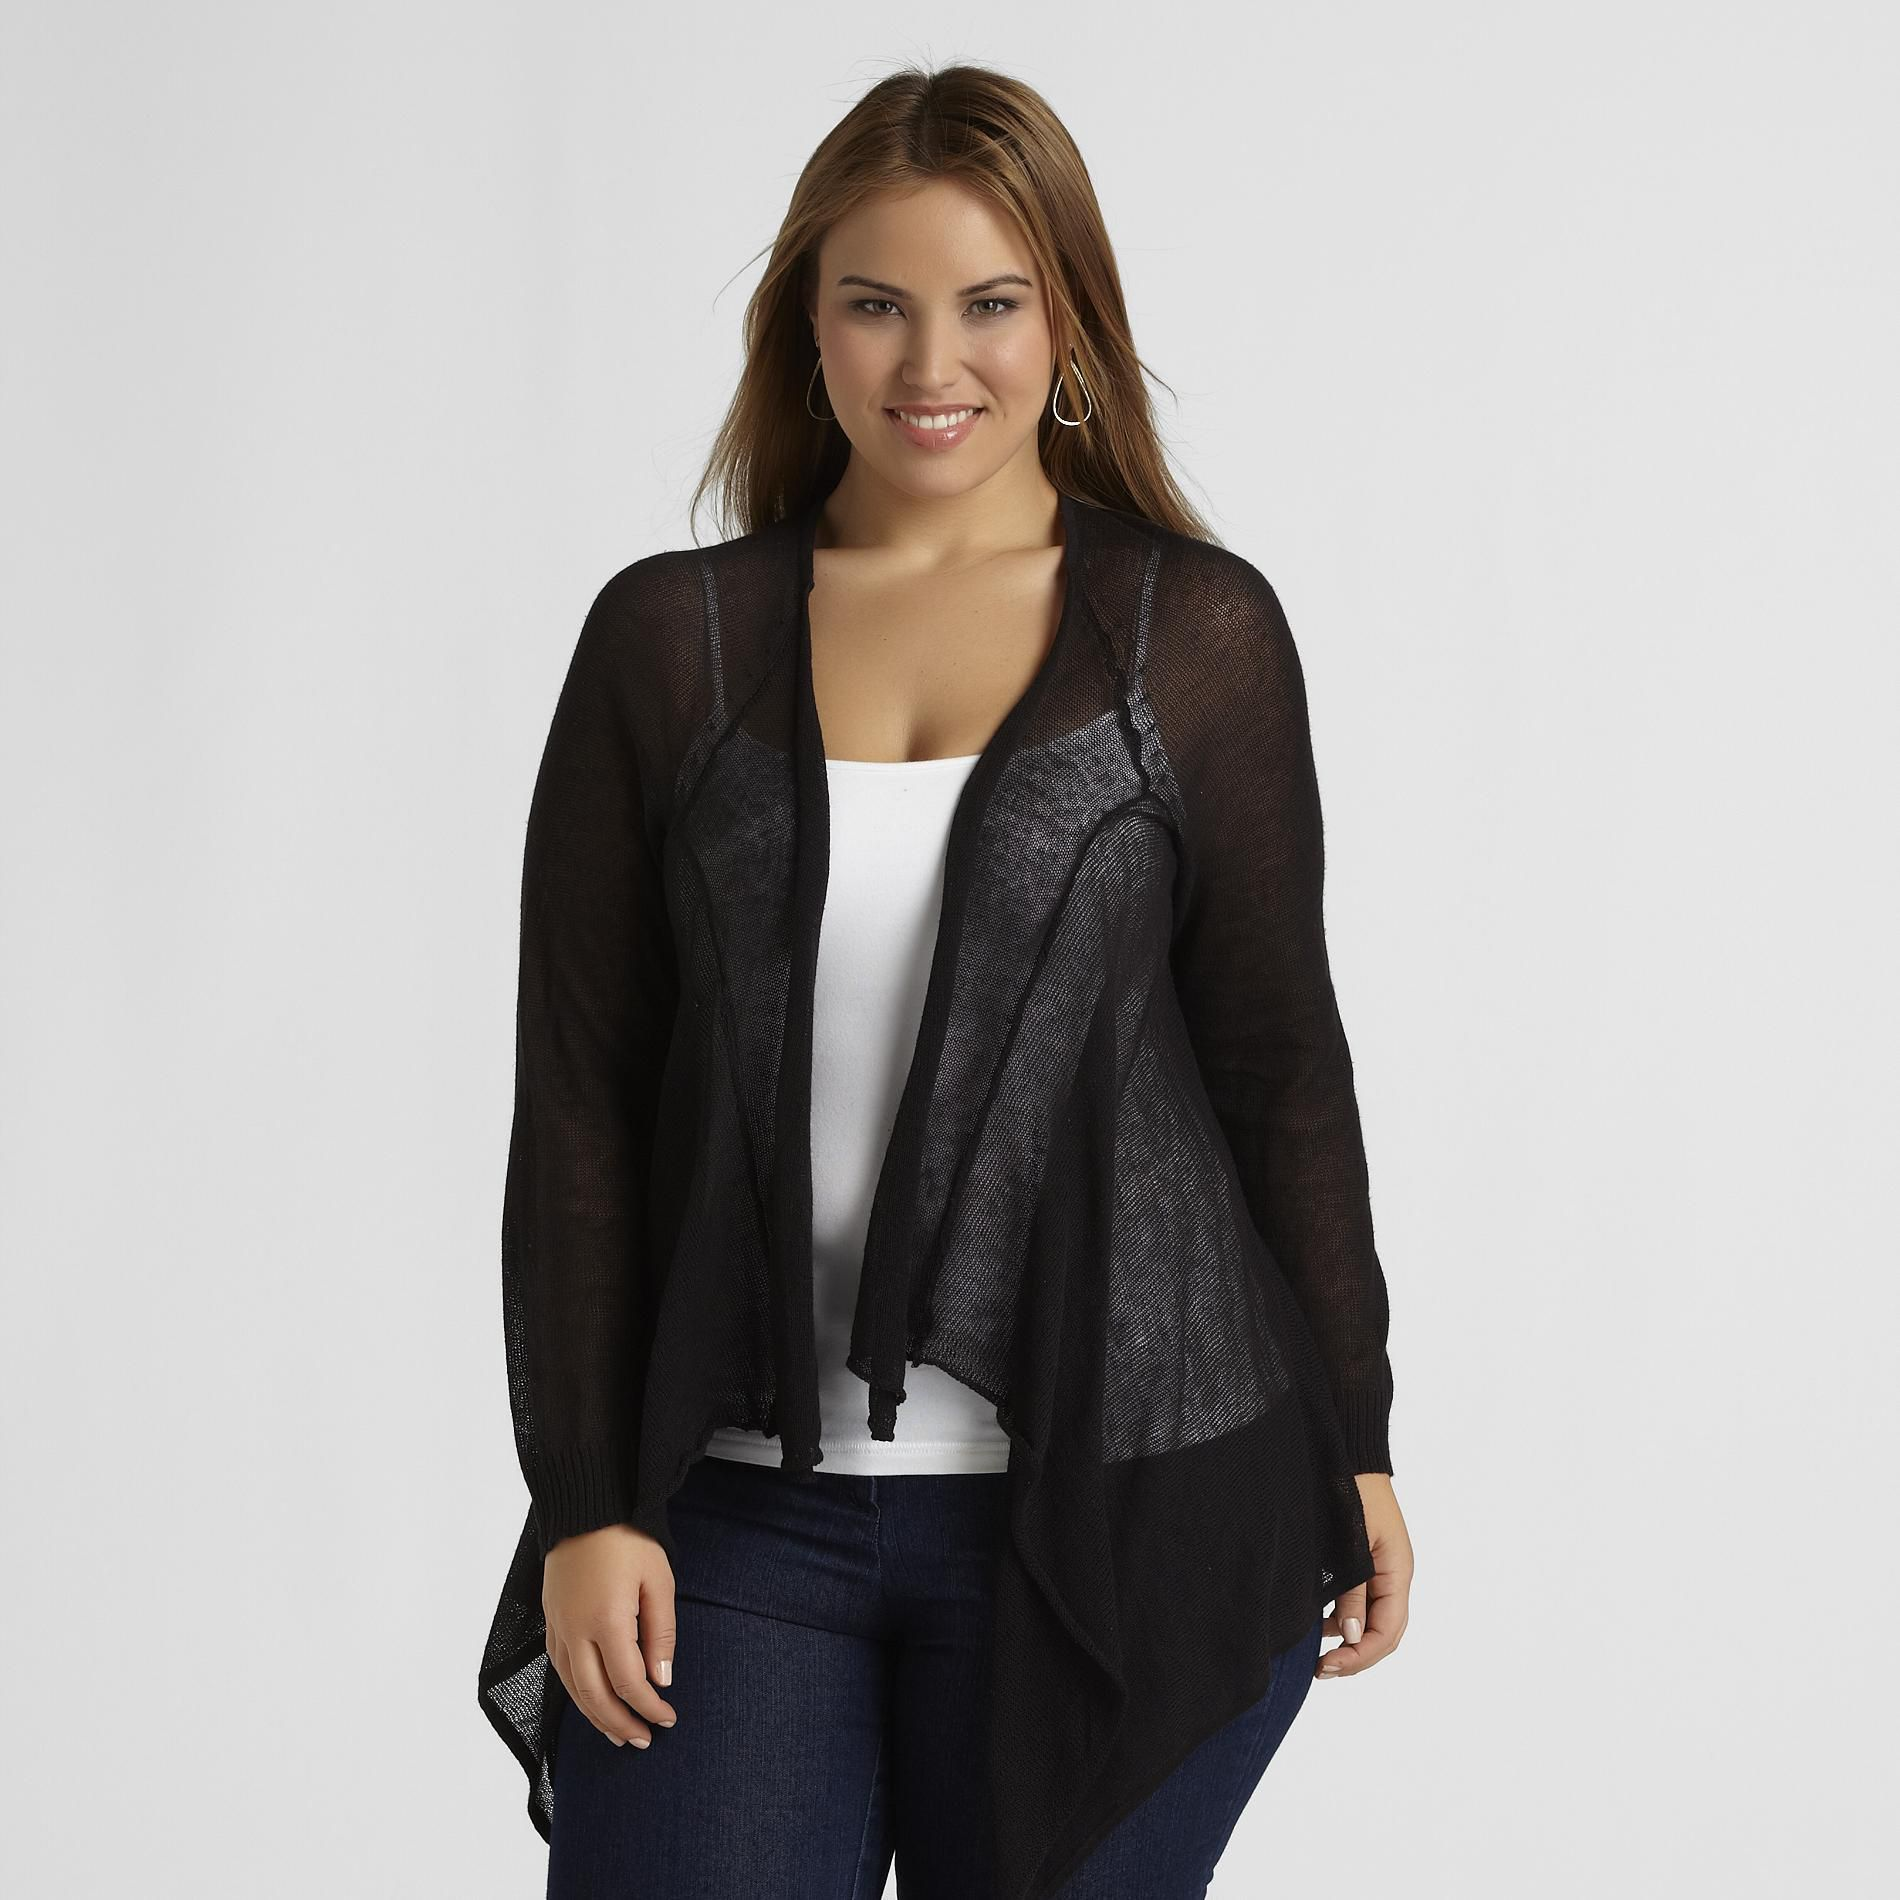 Love Your Style, Love Your Size Women's Plus Cascade Front Cardigan at Kmart.com